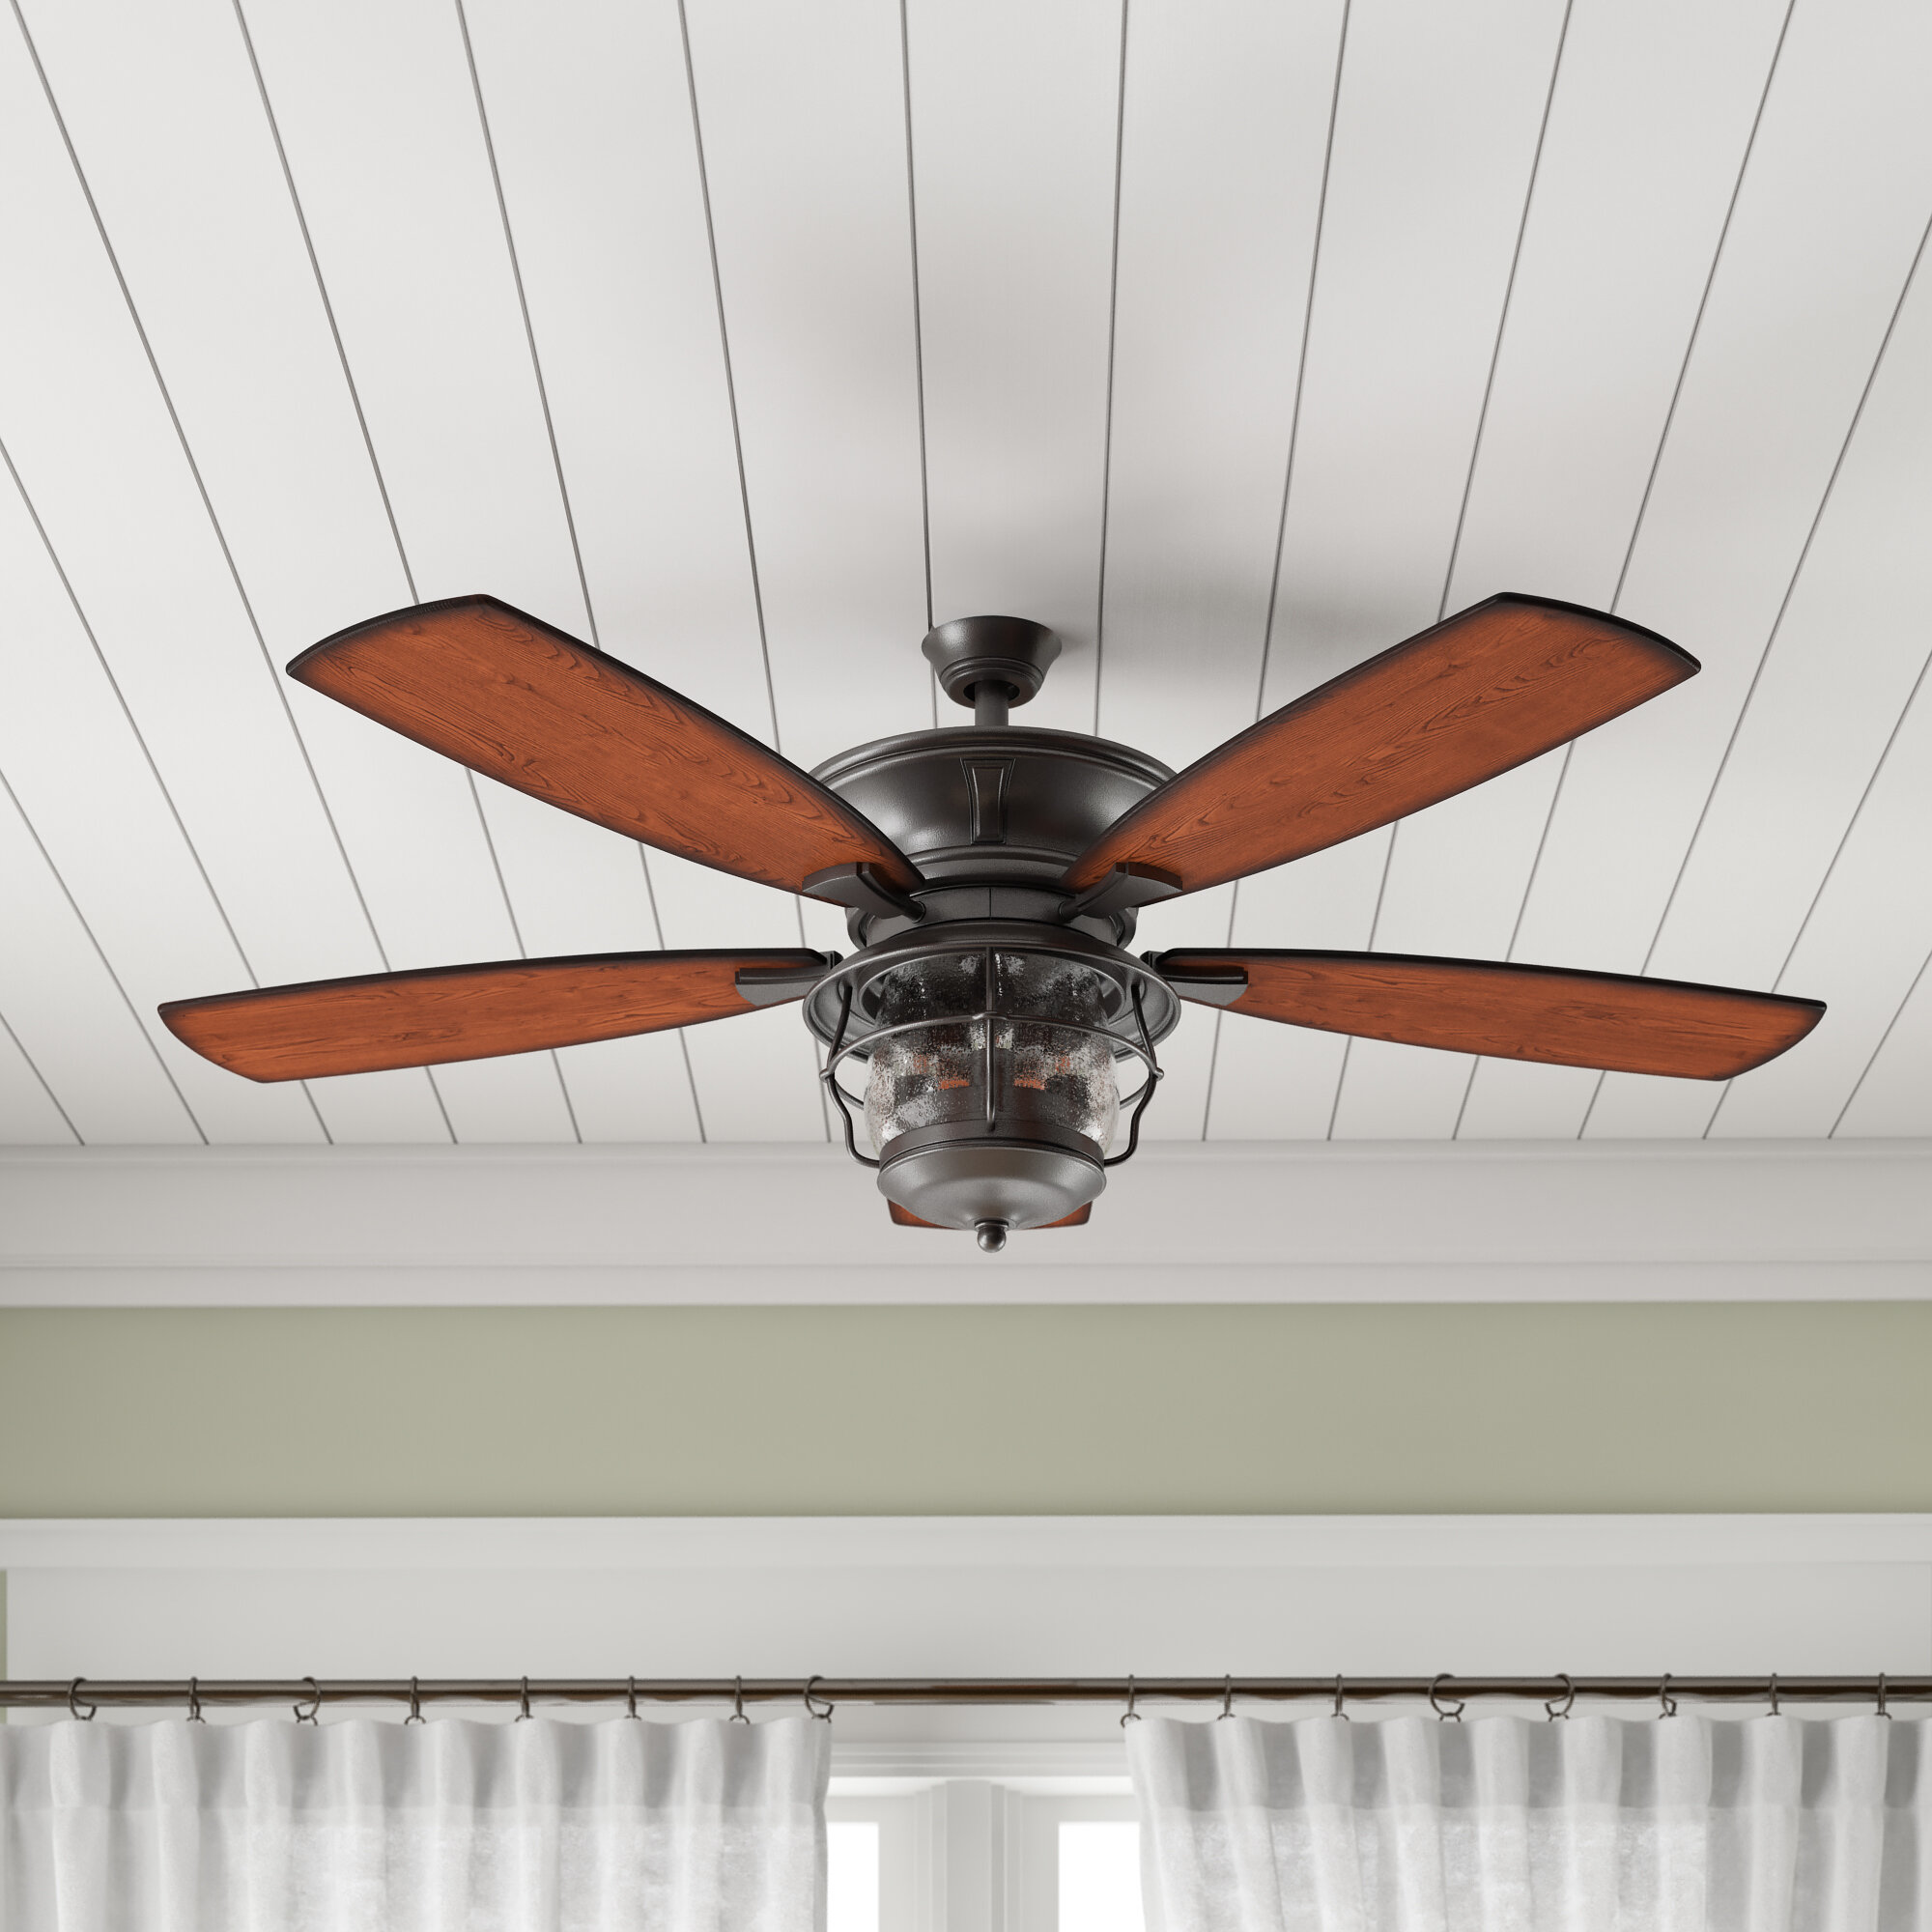 Birch lane heritage 52 quebec 5 blade outdoor ceiling fan light kit included reviews birch lane